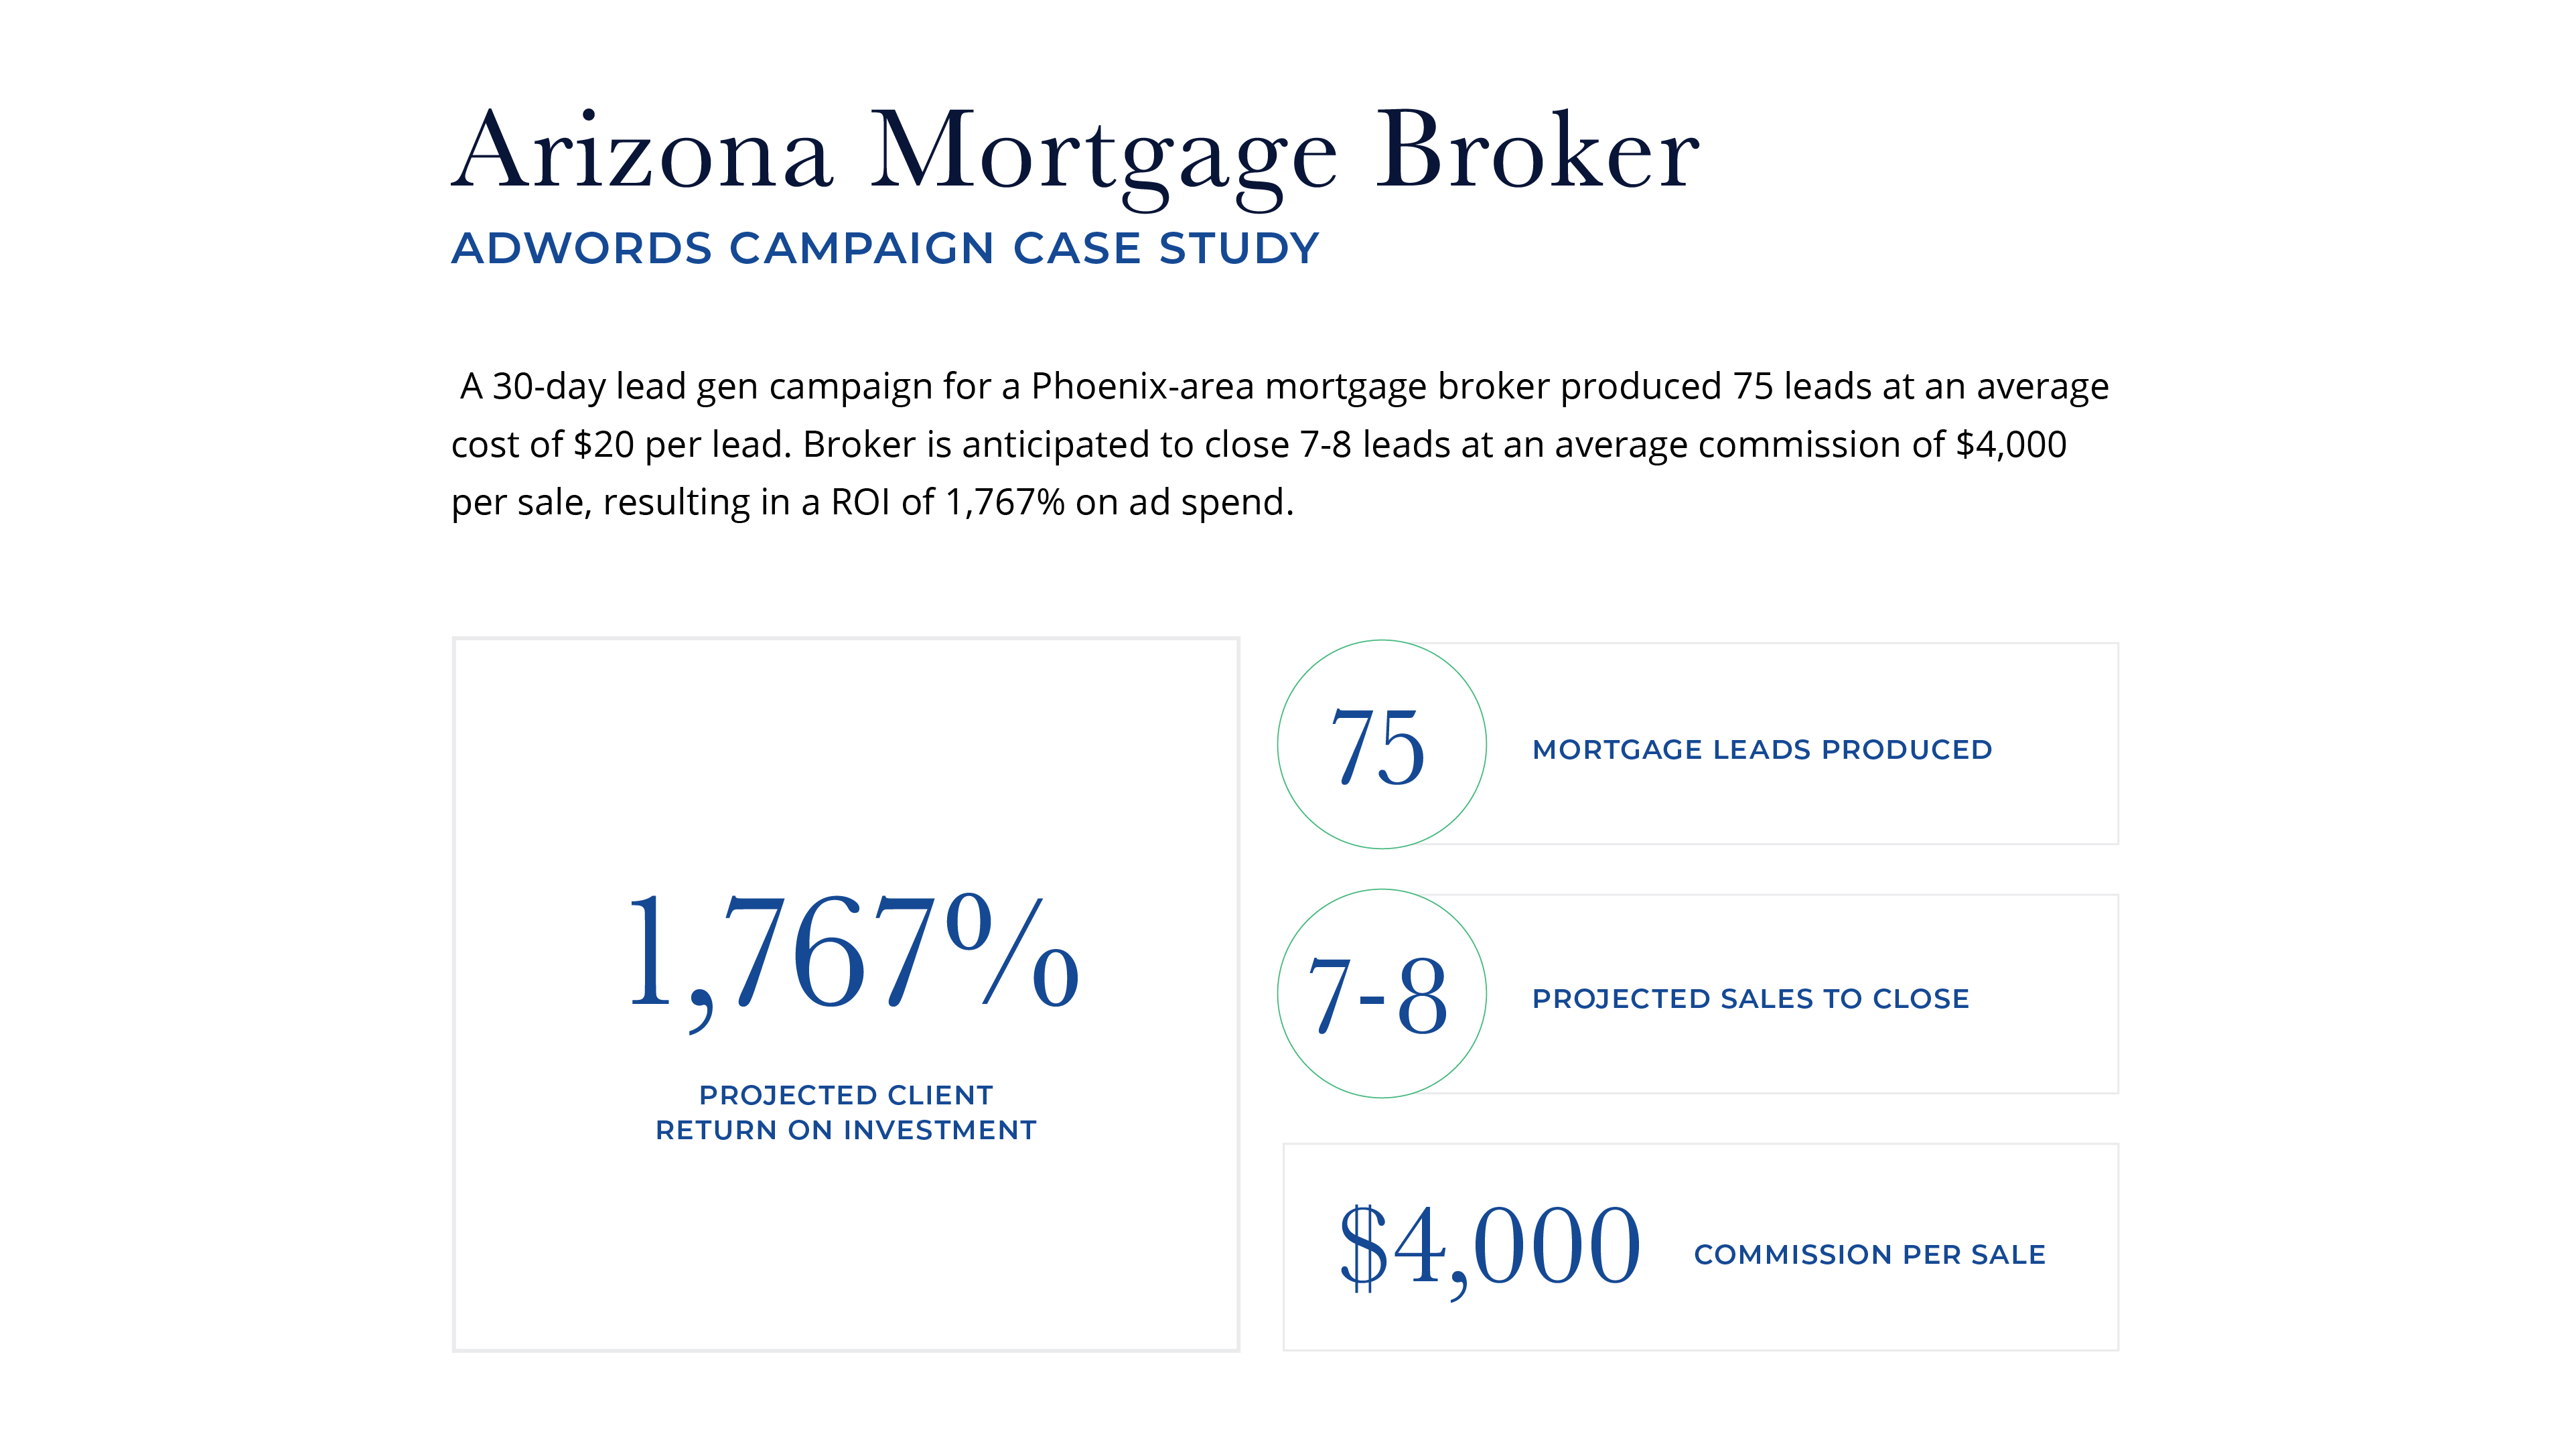 Arizona-Mortgage@2x-100